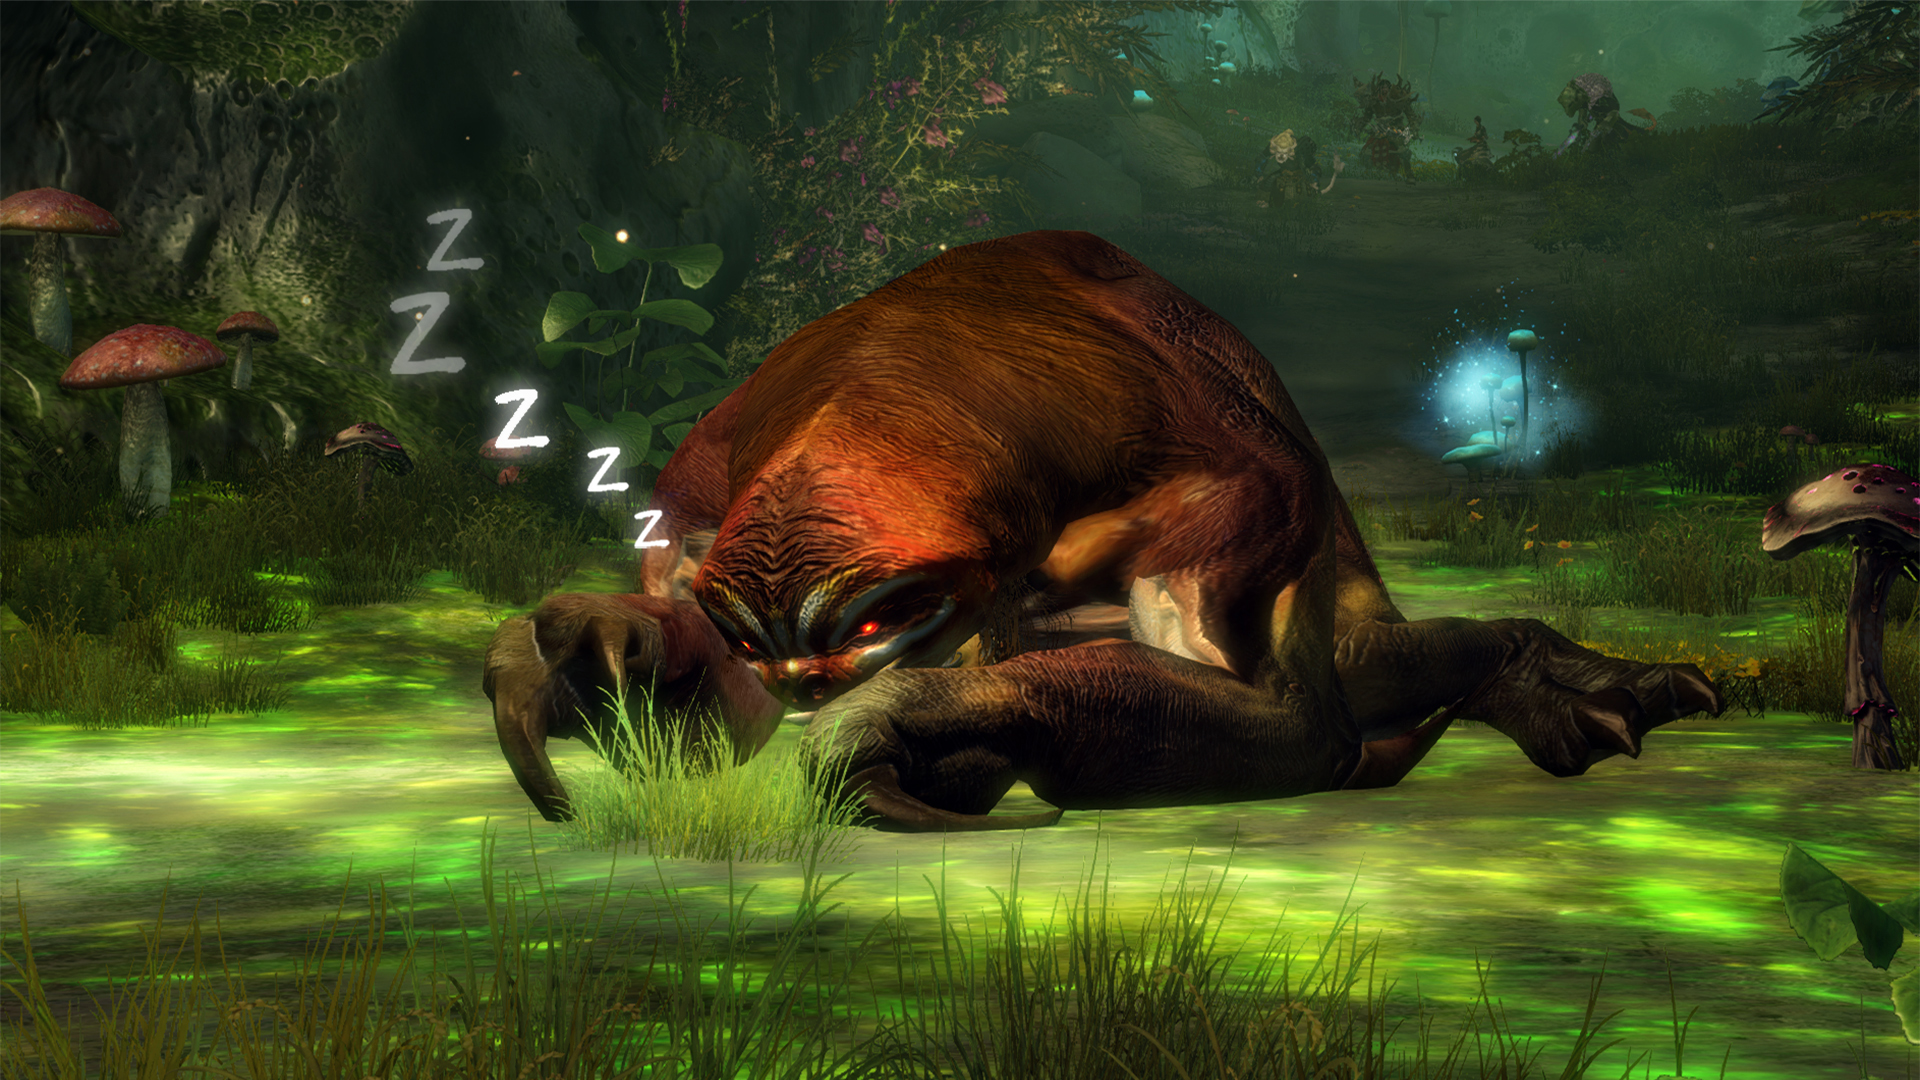 Sloth_Sleepy